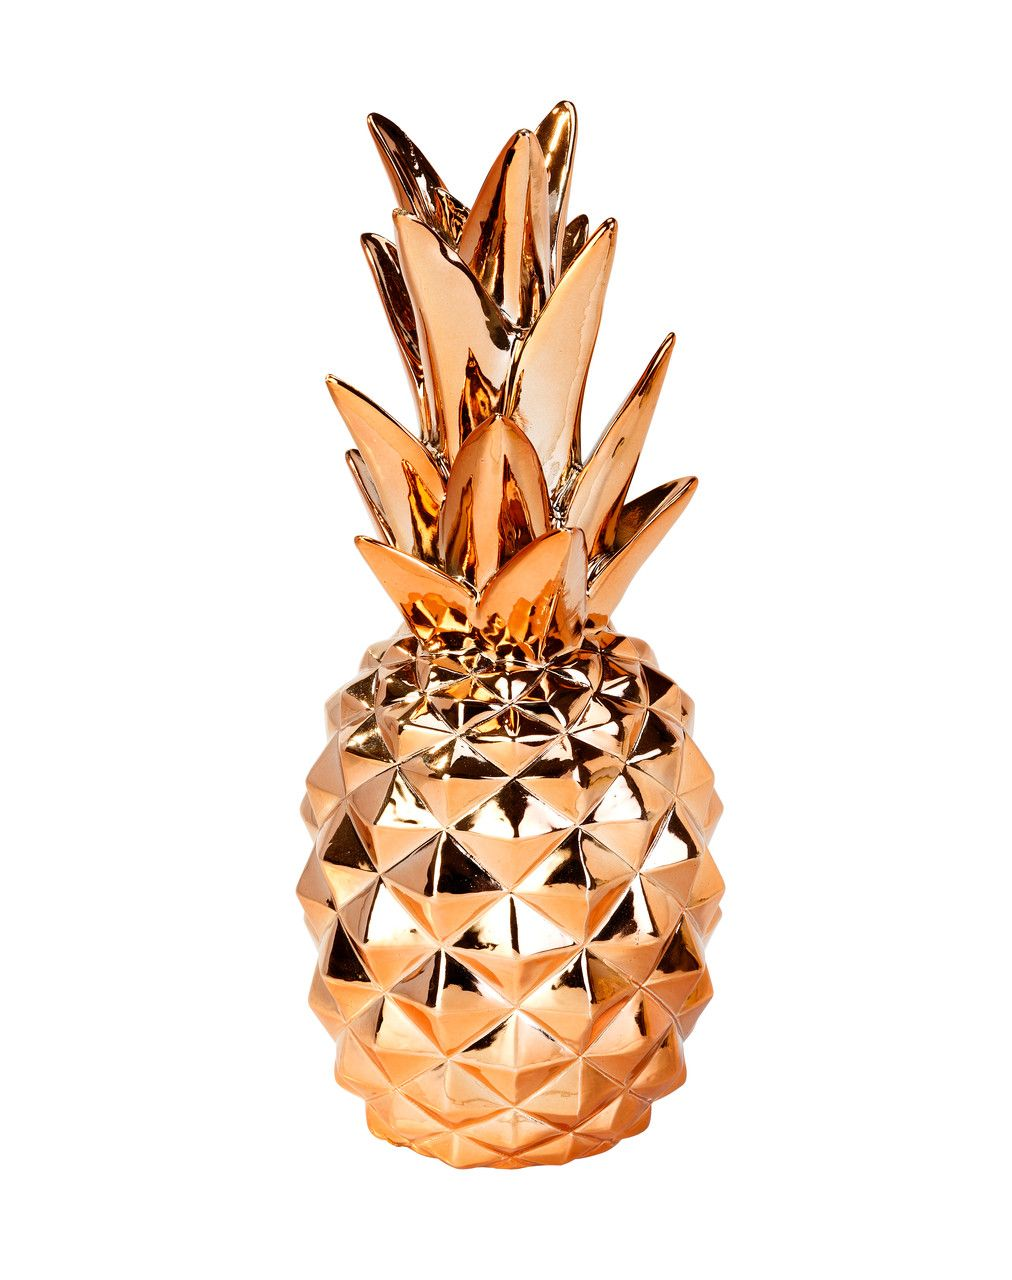 d coration ananas cuivre pineapple decoration anniversaire gold d coration ananas ananas. Black Bedroom Furniture Sets. Home Design Ideas